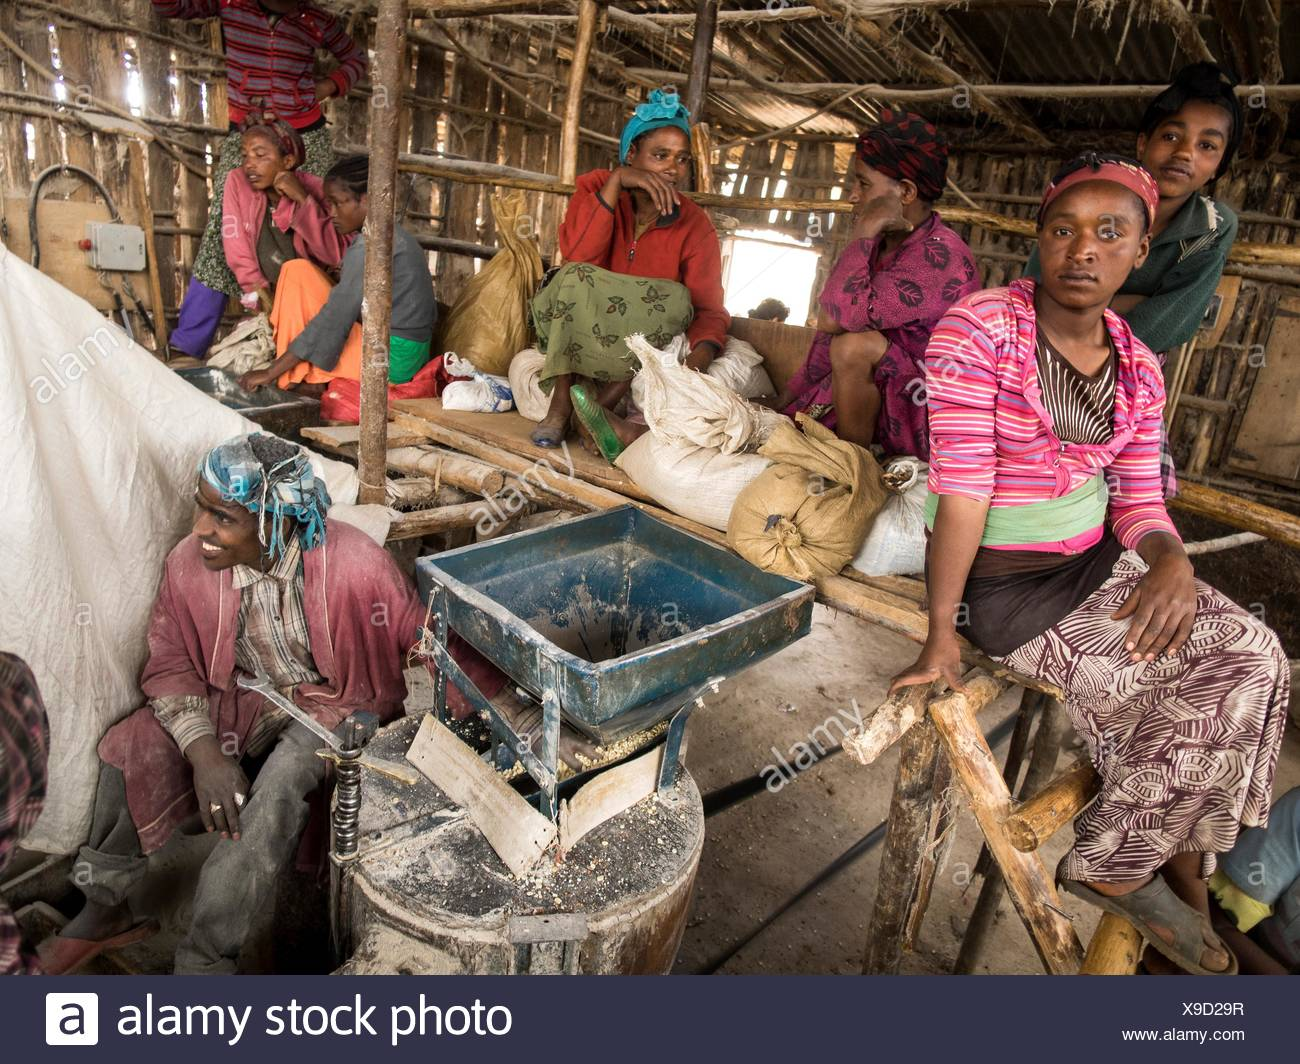 People waiting to grind millet a local mill. - Stock Image